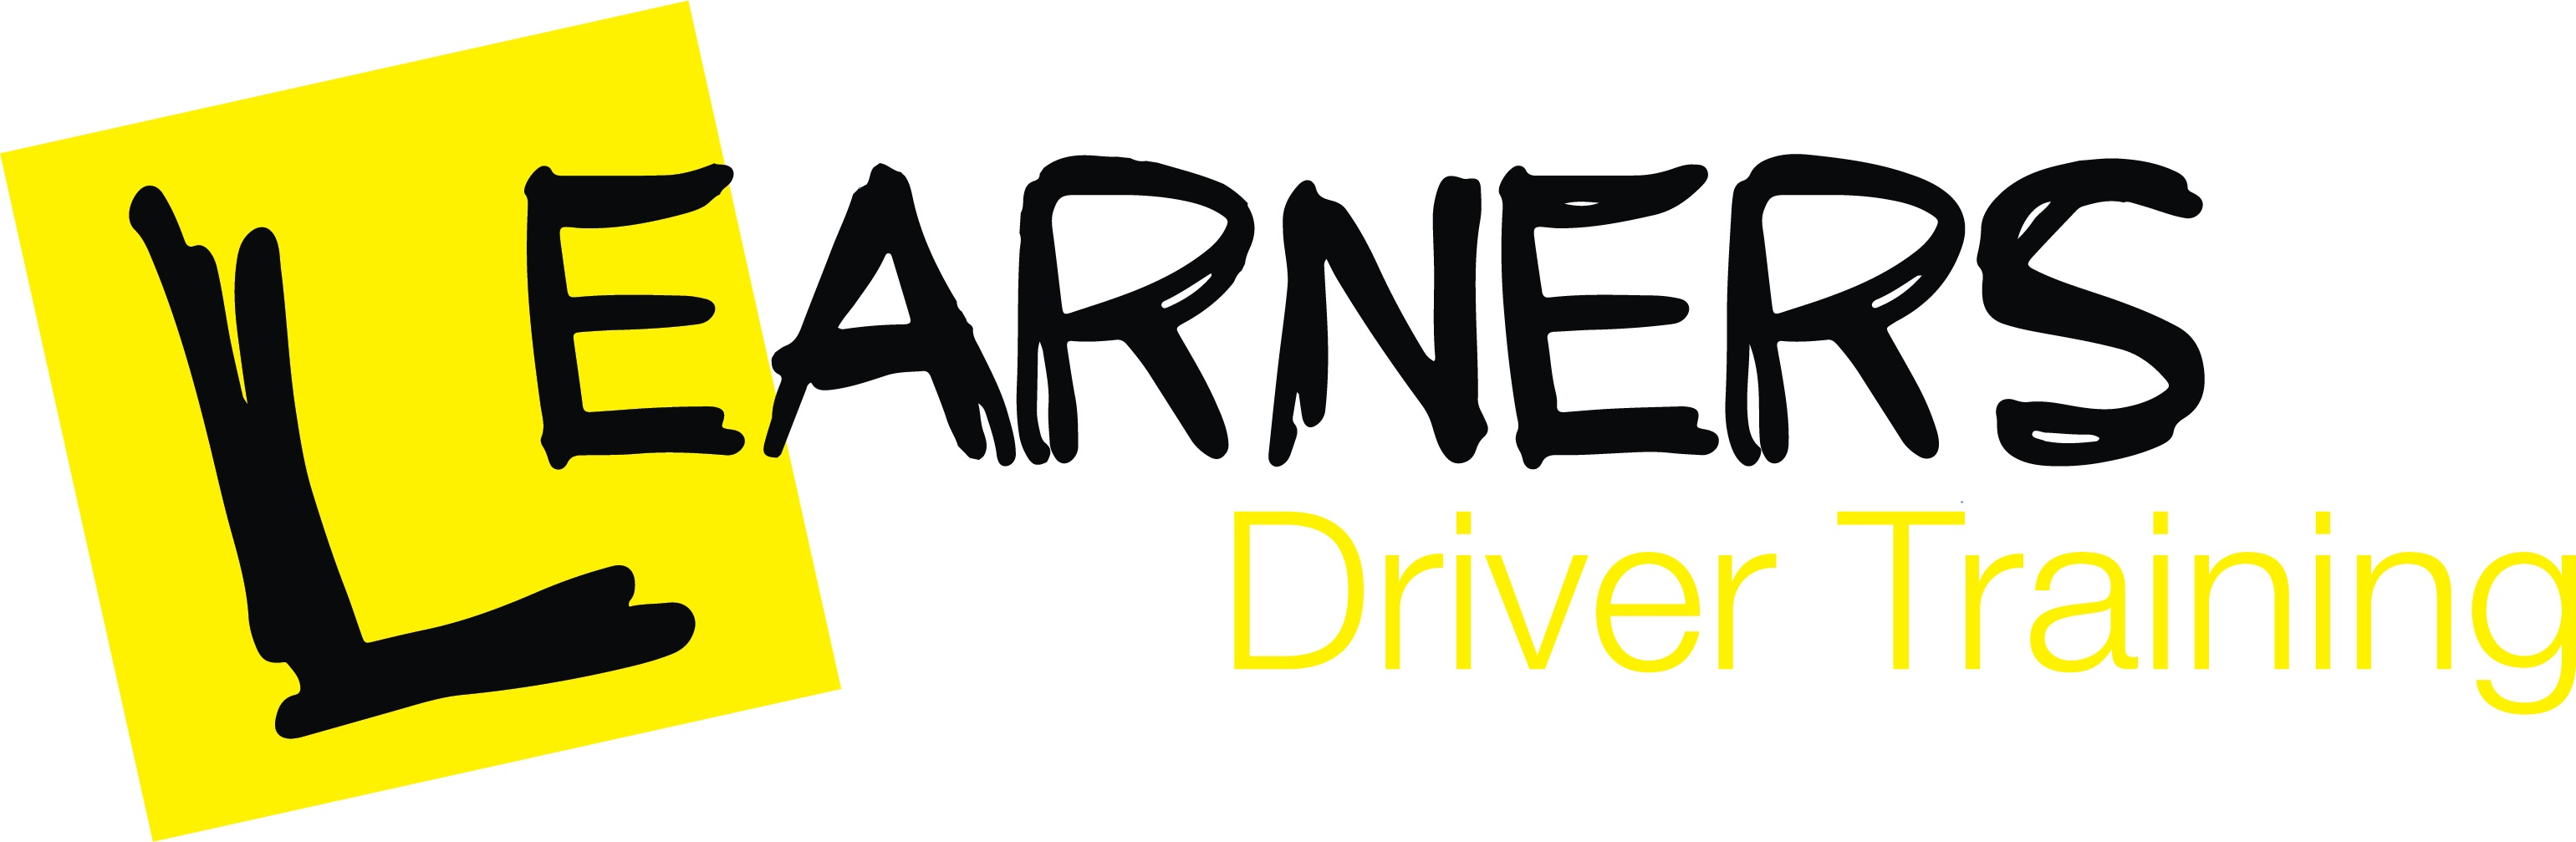 Learners Driver Training Logo